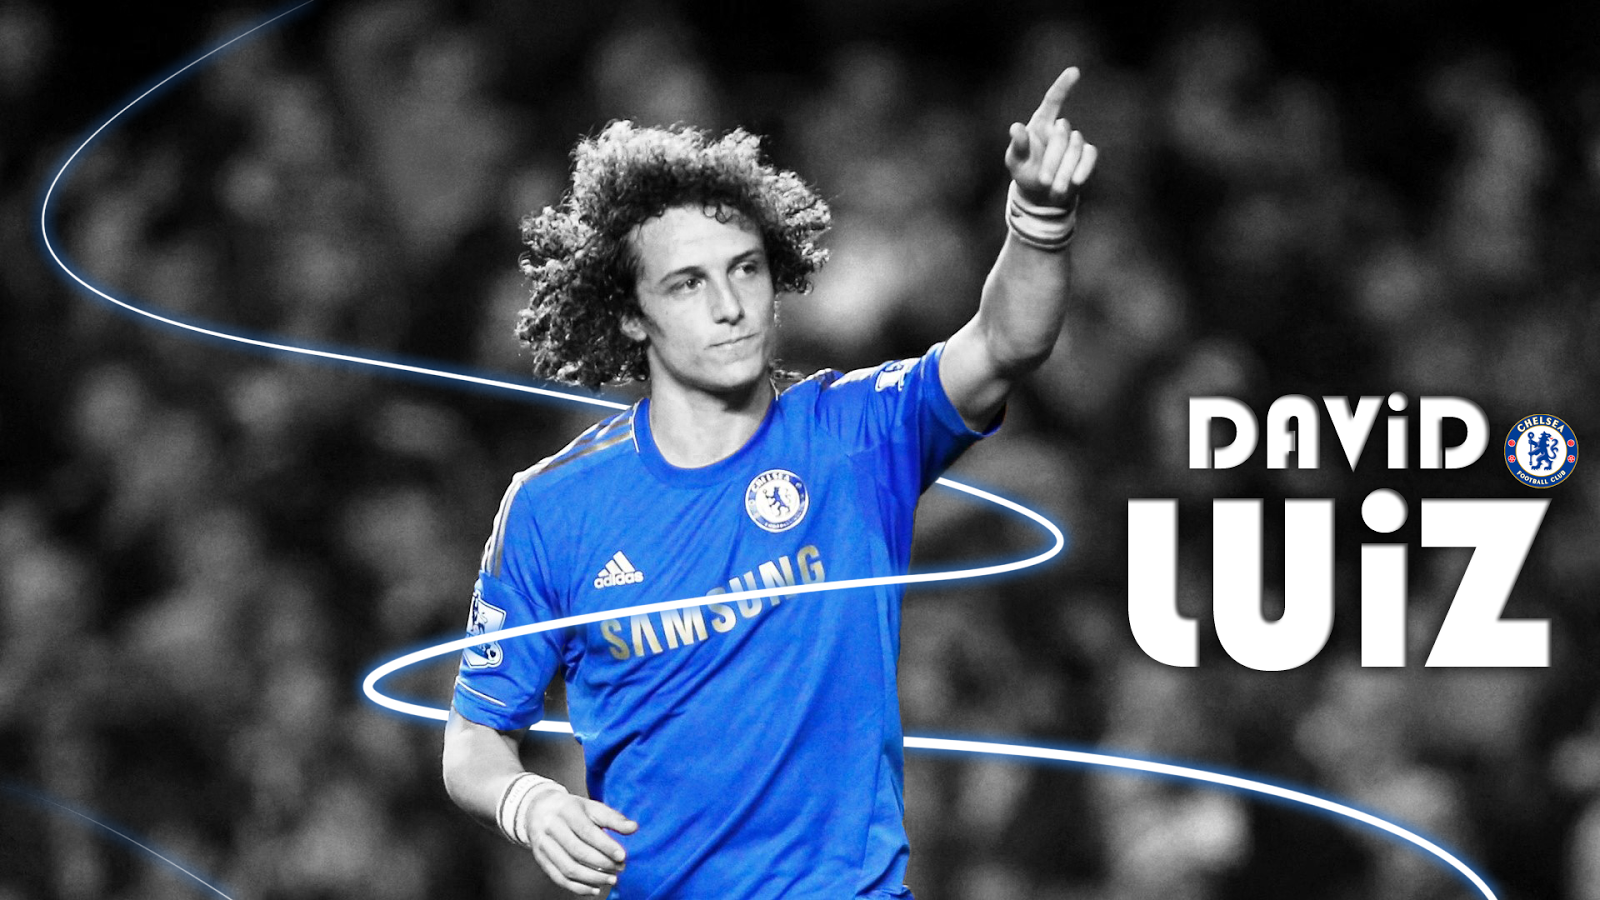 David Luiz Fresh HD Wallpaper 2014